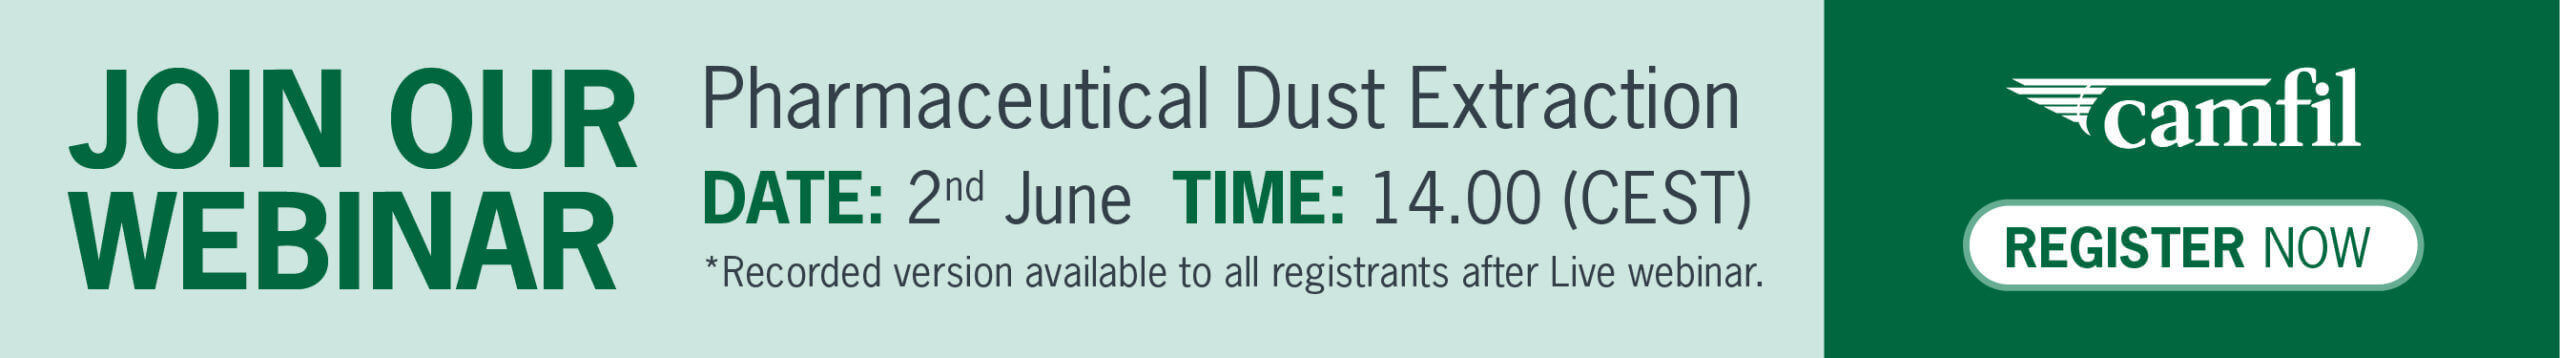 PHARMACEUTICAL DUST EXTRACTION: CHALLENGES TO CONTAINMENT, EXPLOSION PROTECTION AND SYSTEM PERFORMANCE EVALUATION